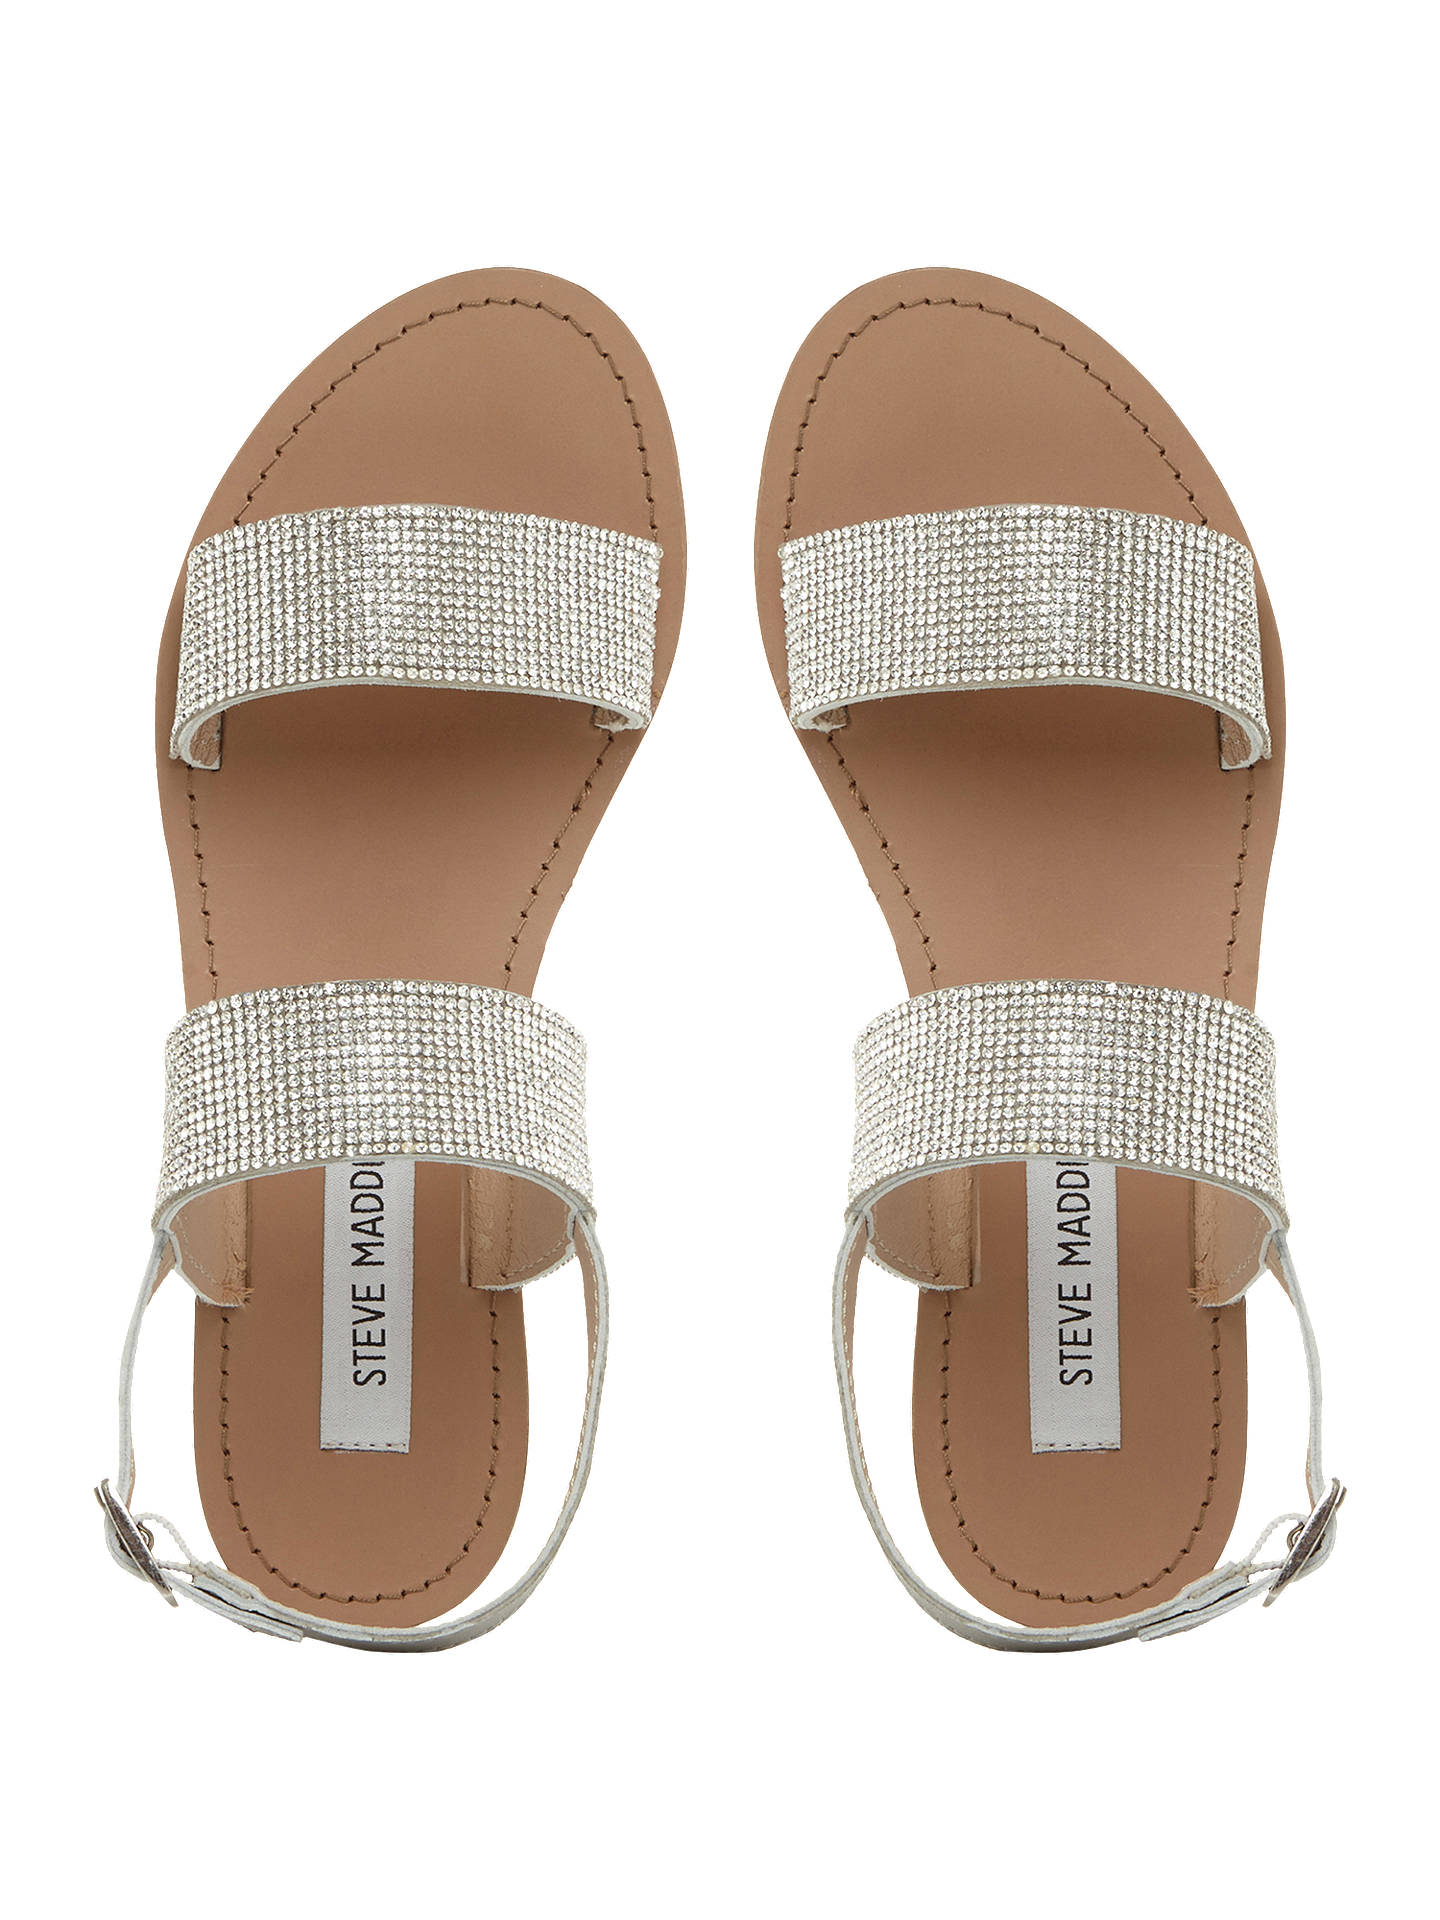 Buy Steve Madden Alea Embellished Sandals, Silver, 3 Online at johnlewis.com